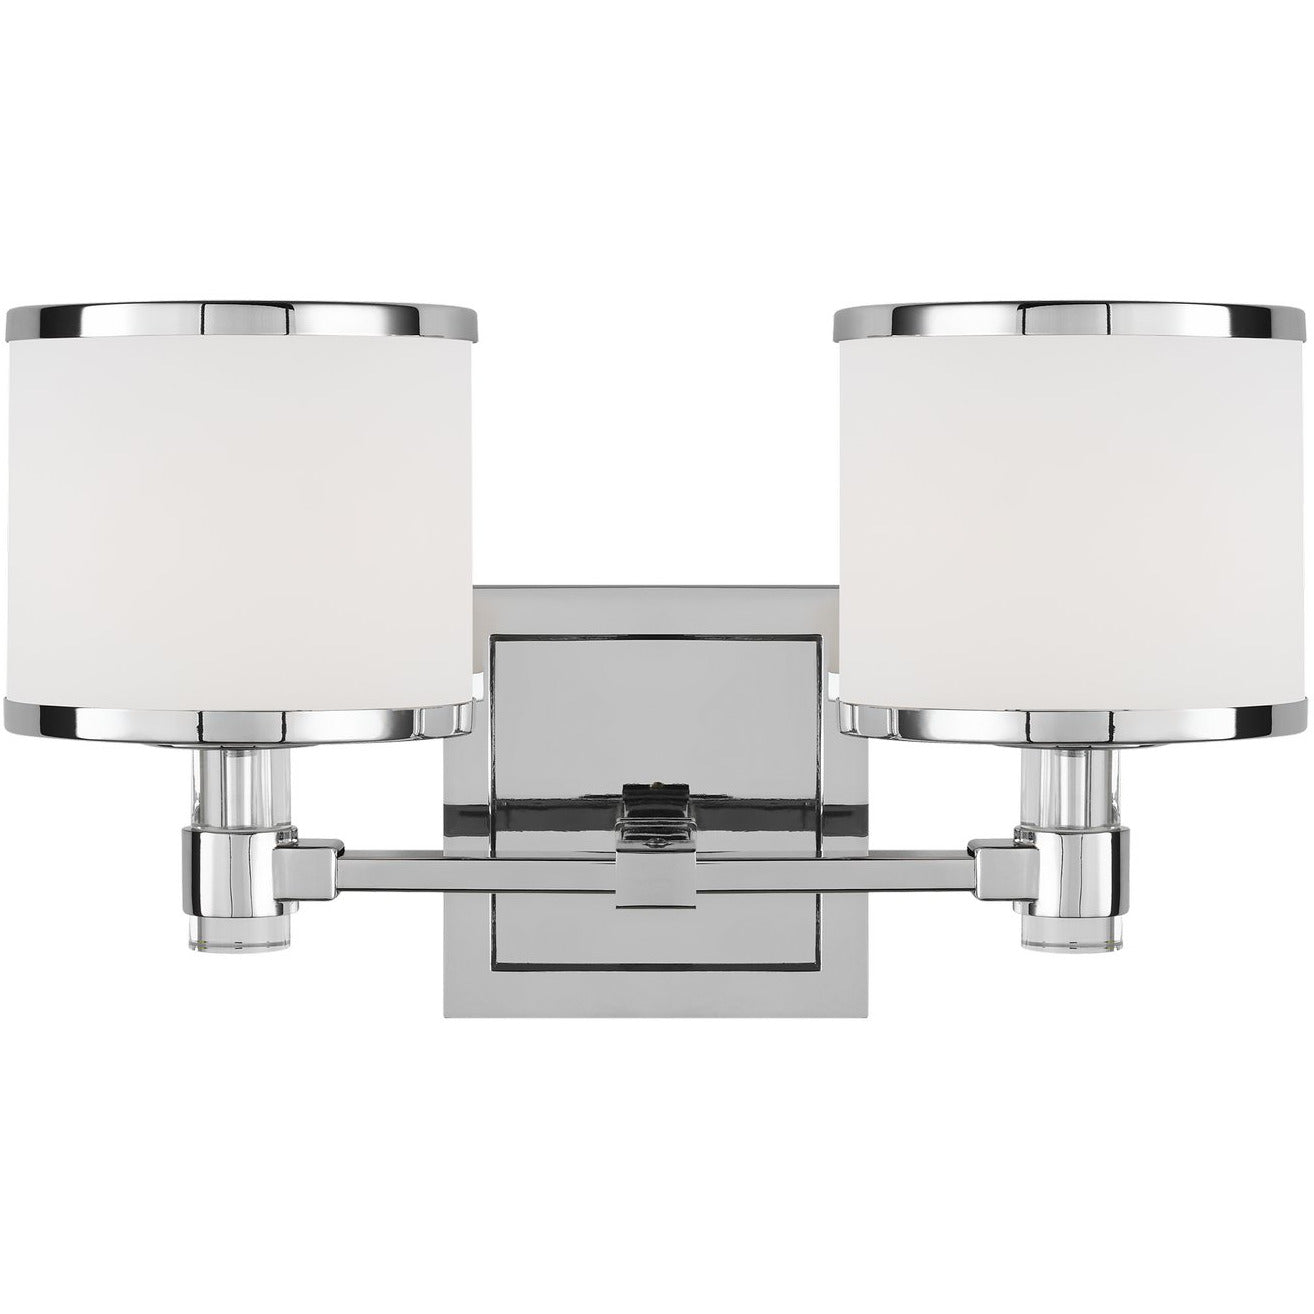 Feiss - VS24372CH-L1 - Generation Lighting - Winter Park - Chrome